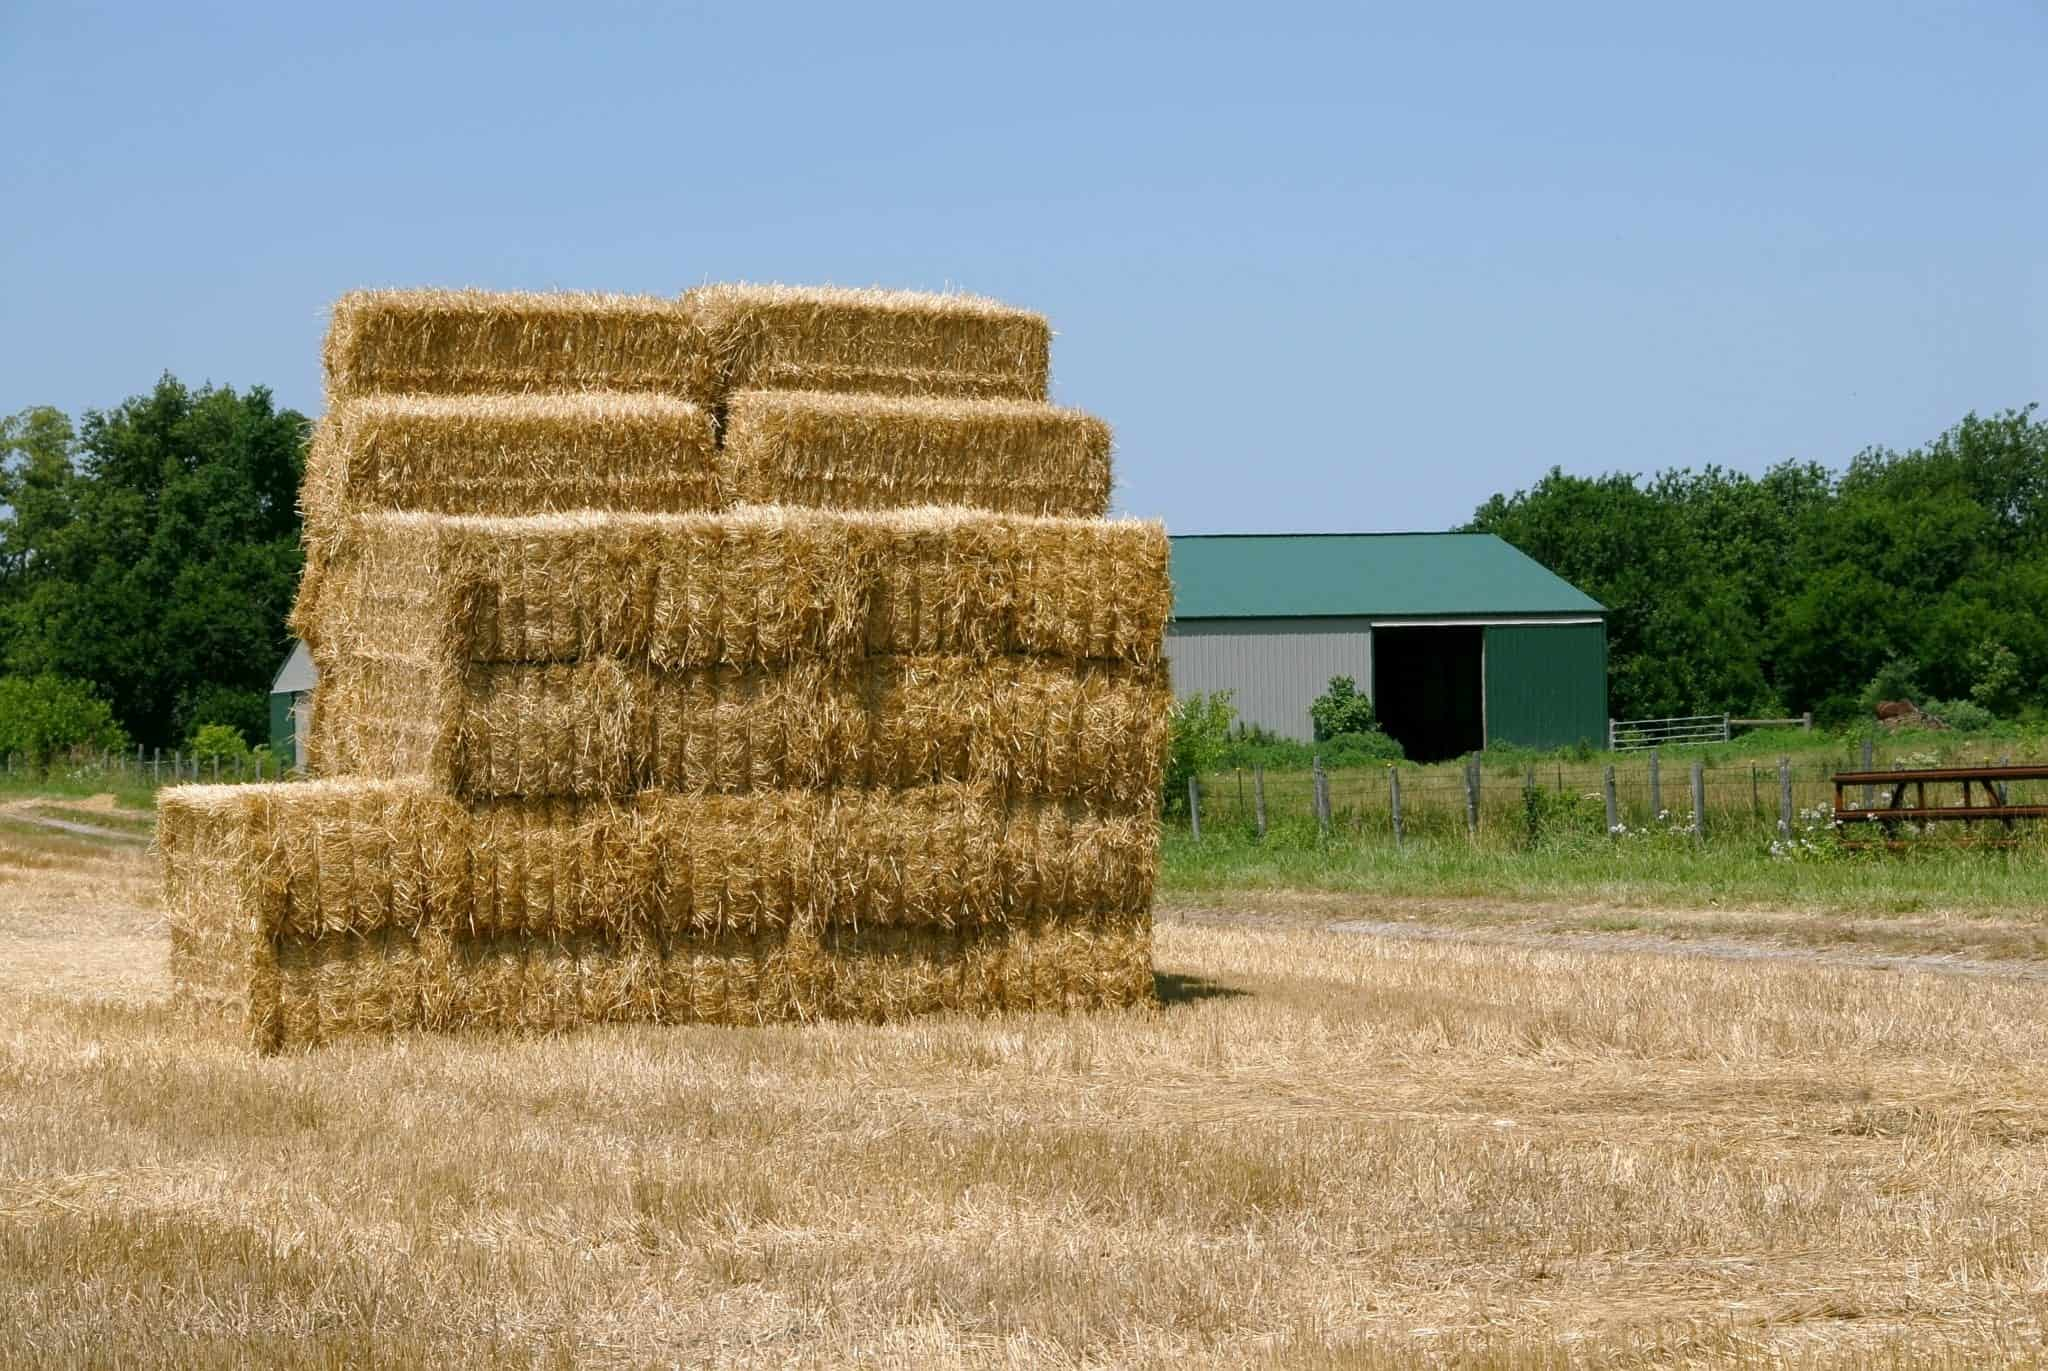 A stack of hay bales in the field of a farm in summer.